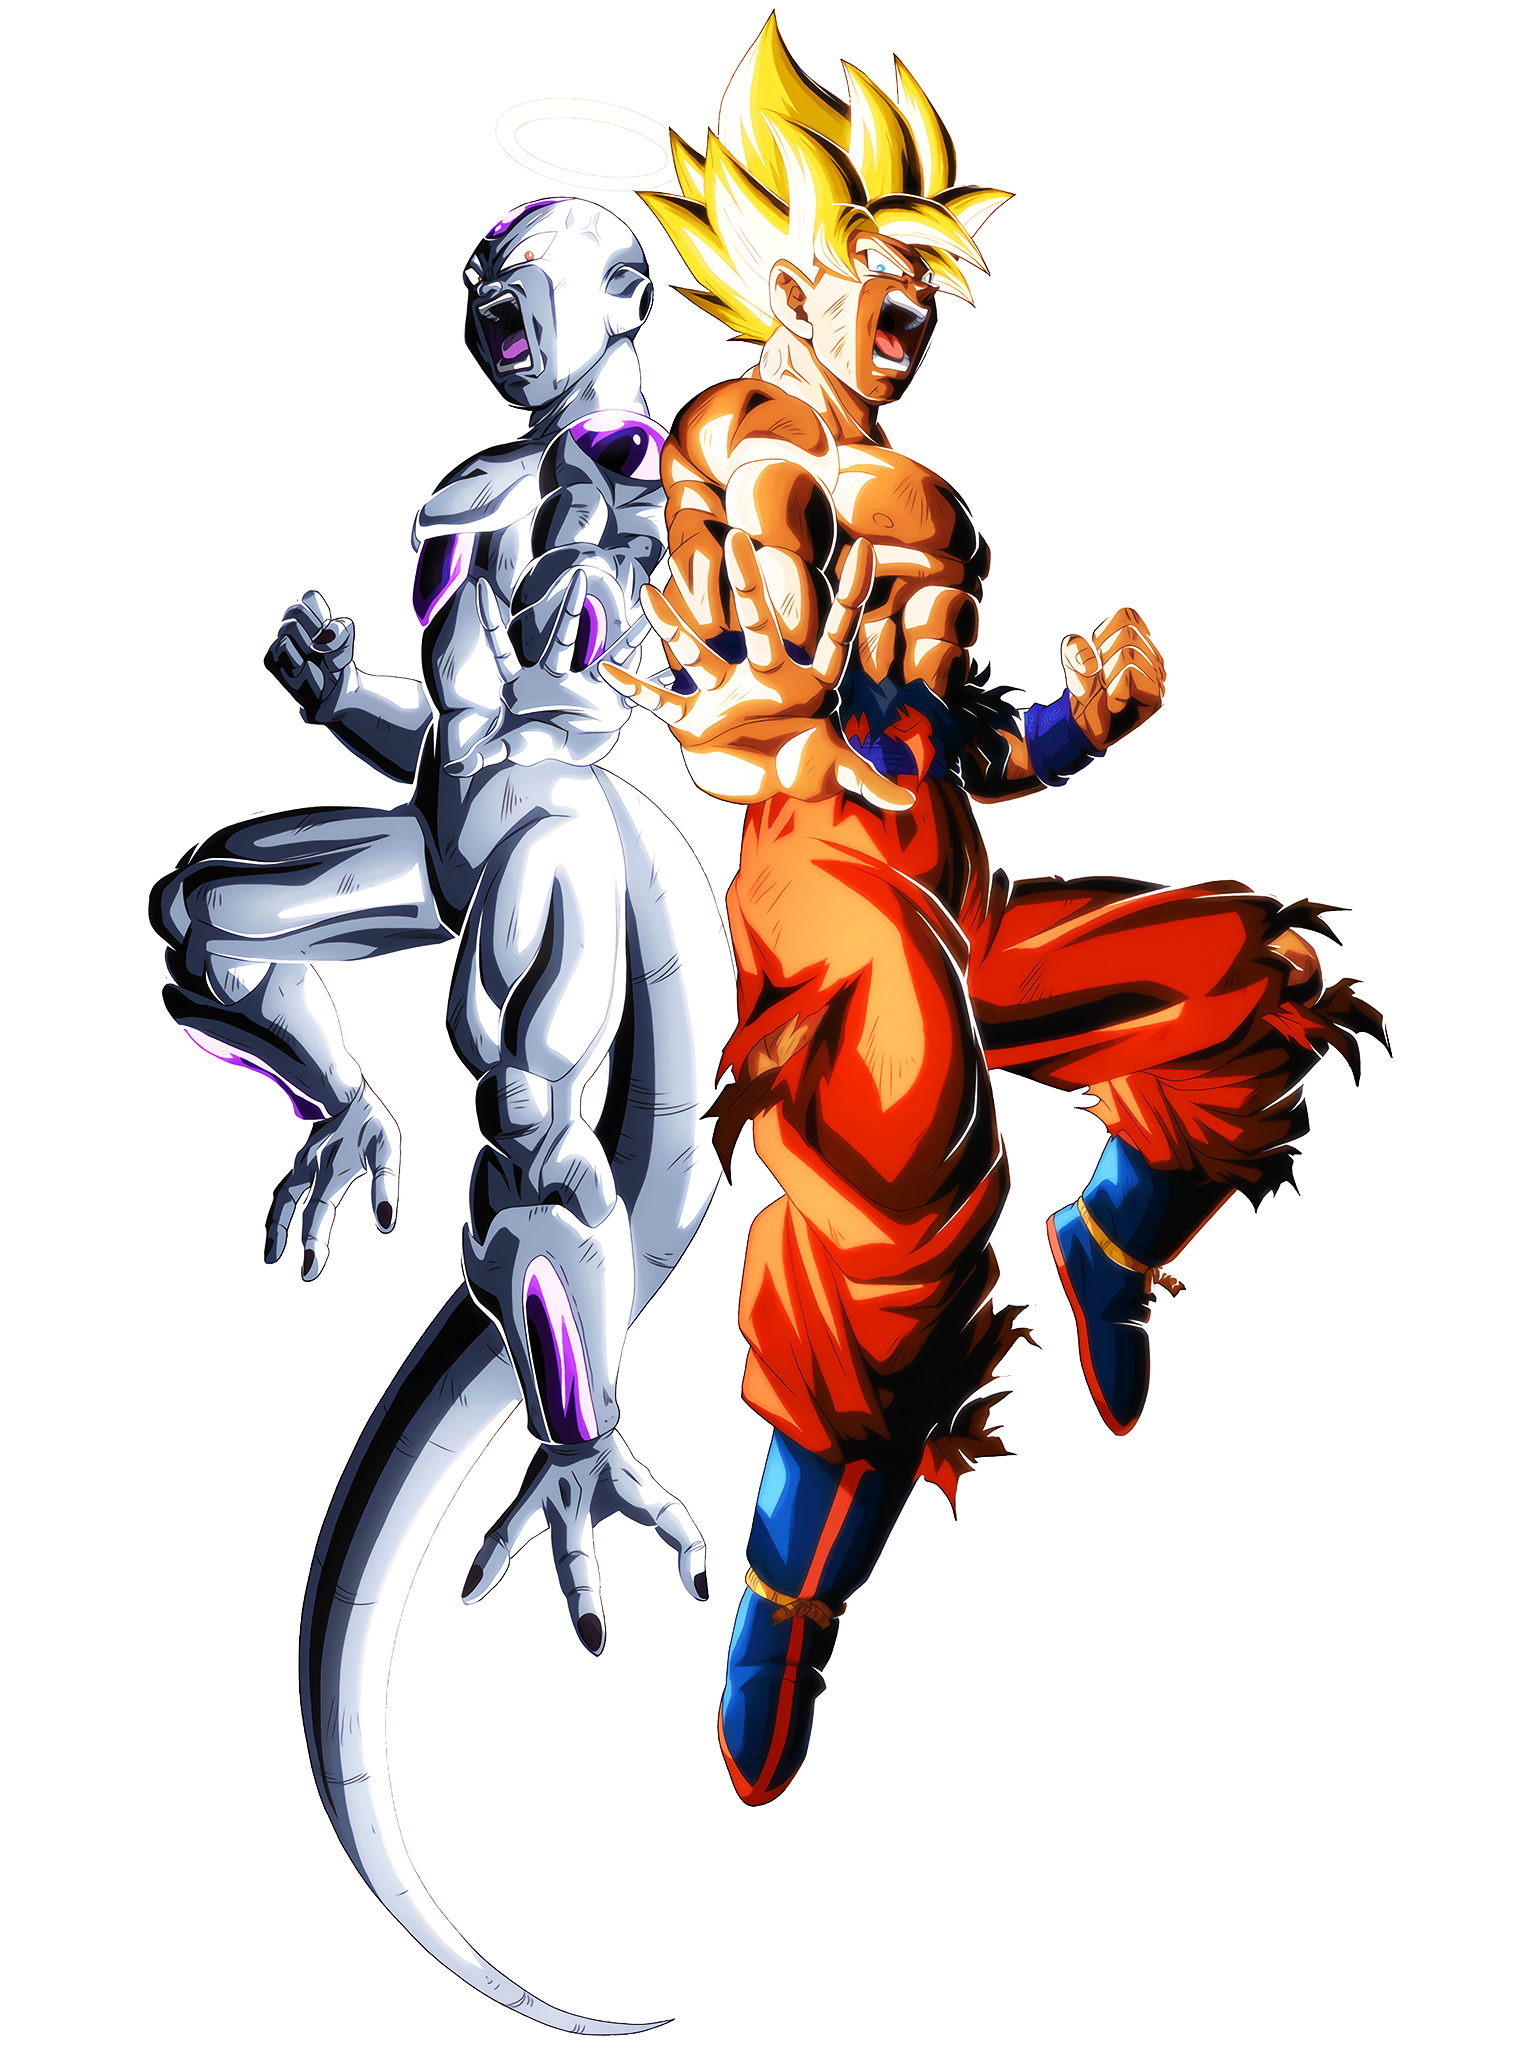 The Miracle of Goku & Frieza 2 DBS Render (Dragon Ball Z Dokkan Battle).png